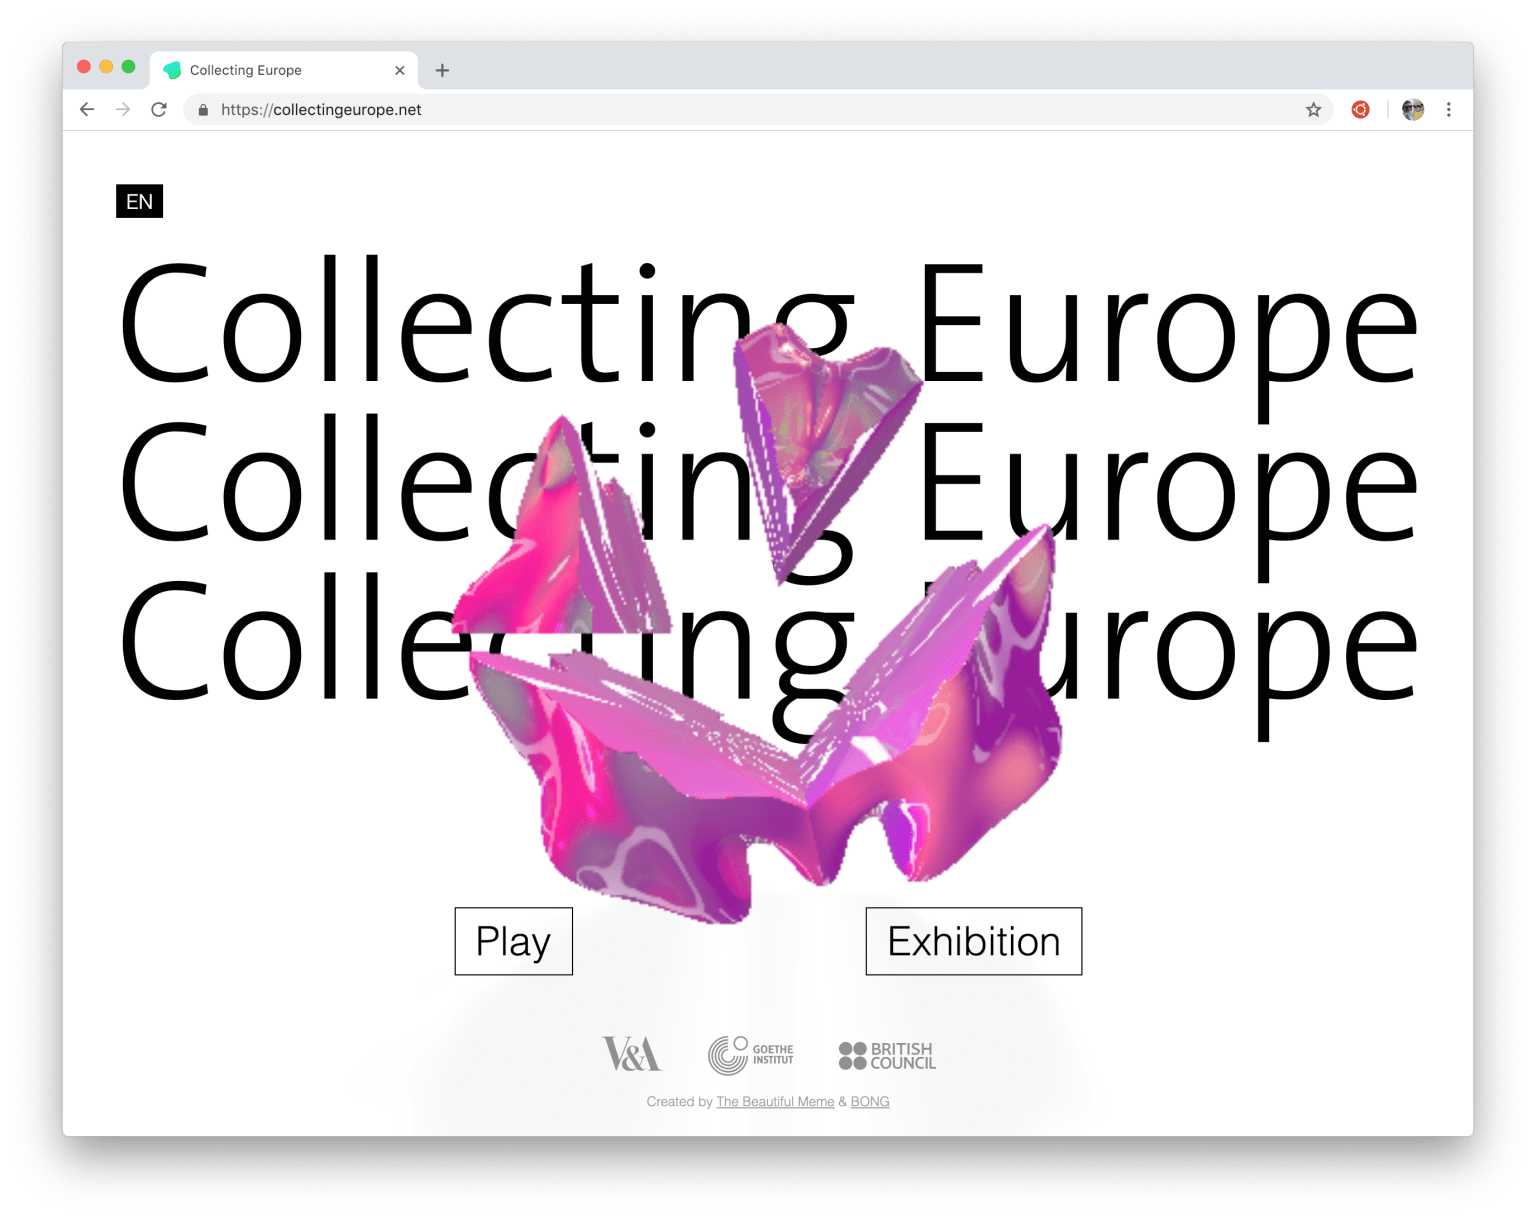 Collecting Europe